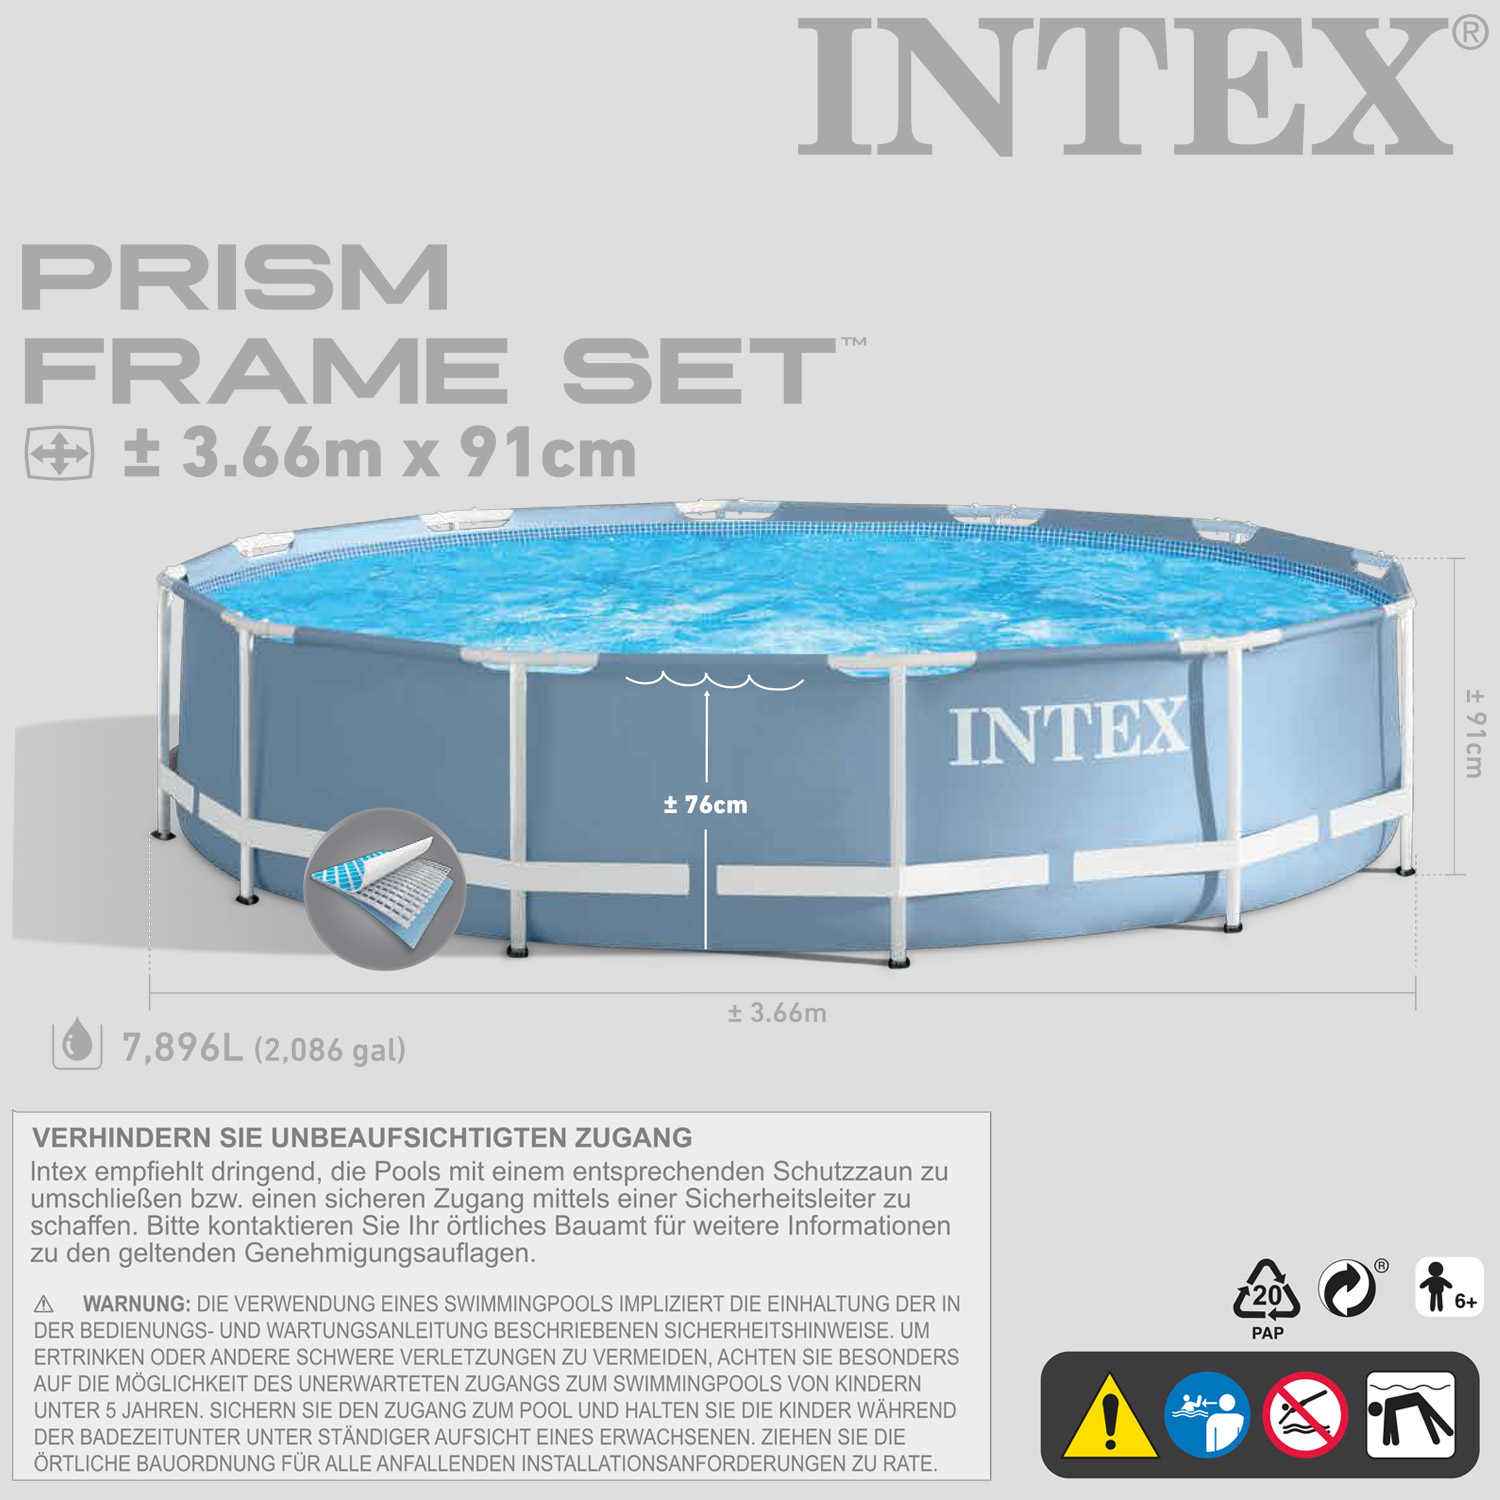 Intex 366x91 schwimmbecken swimming pool schwimmbad frame for Garten pool intex